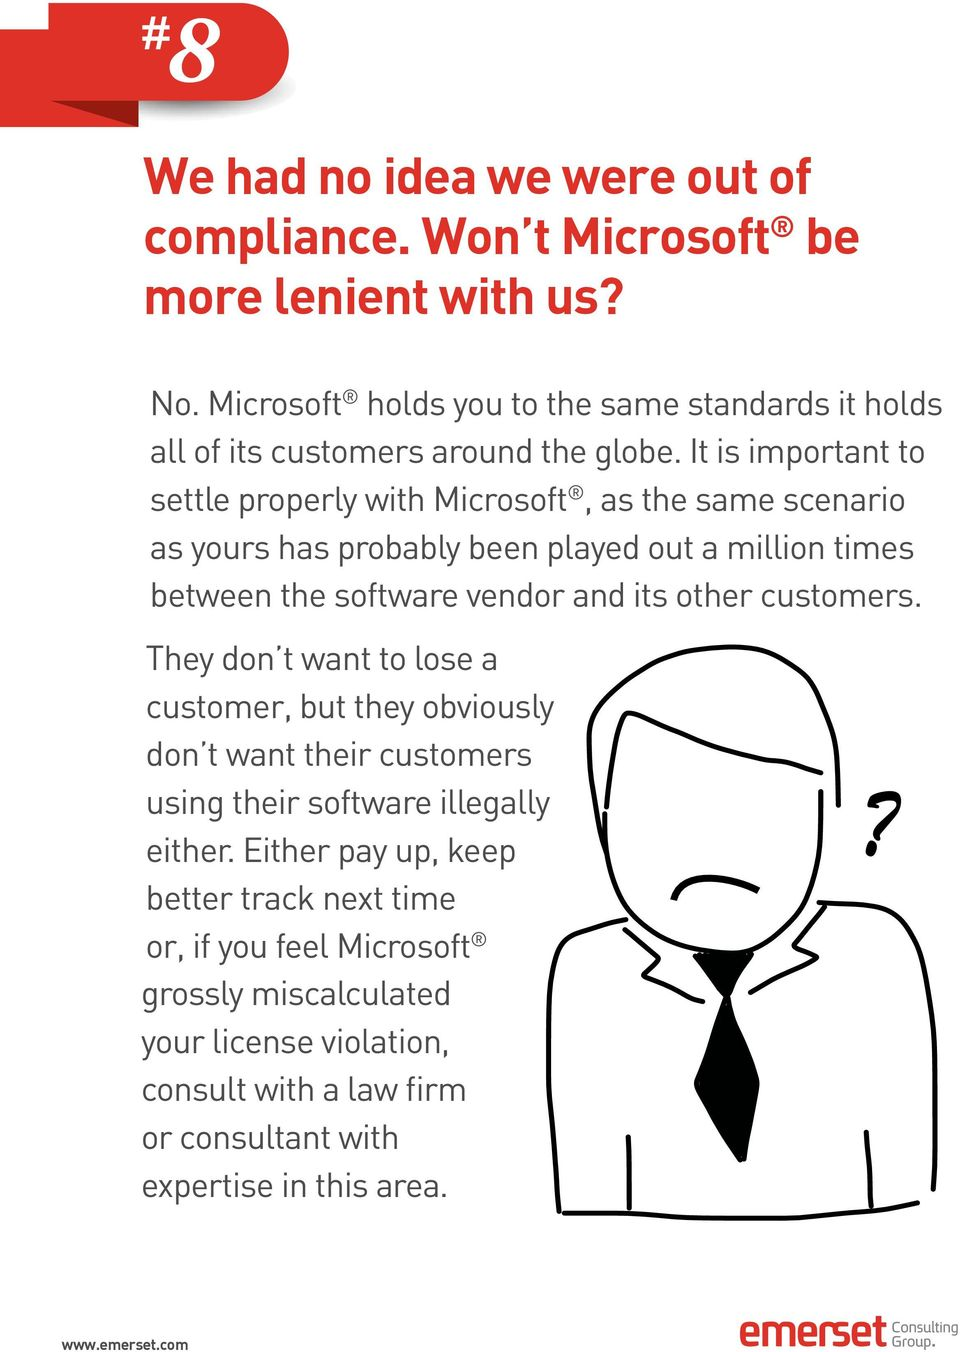 It is important to settle properly with Microsoft, as the same scenario as yours has probably been played out a million times between the software vendor and its